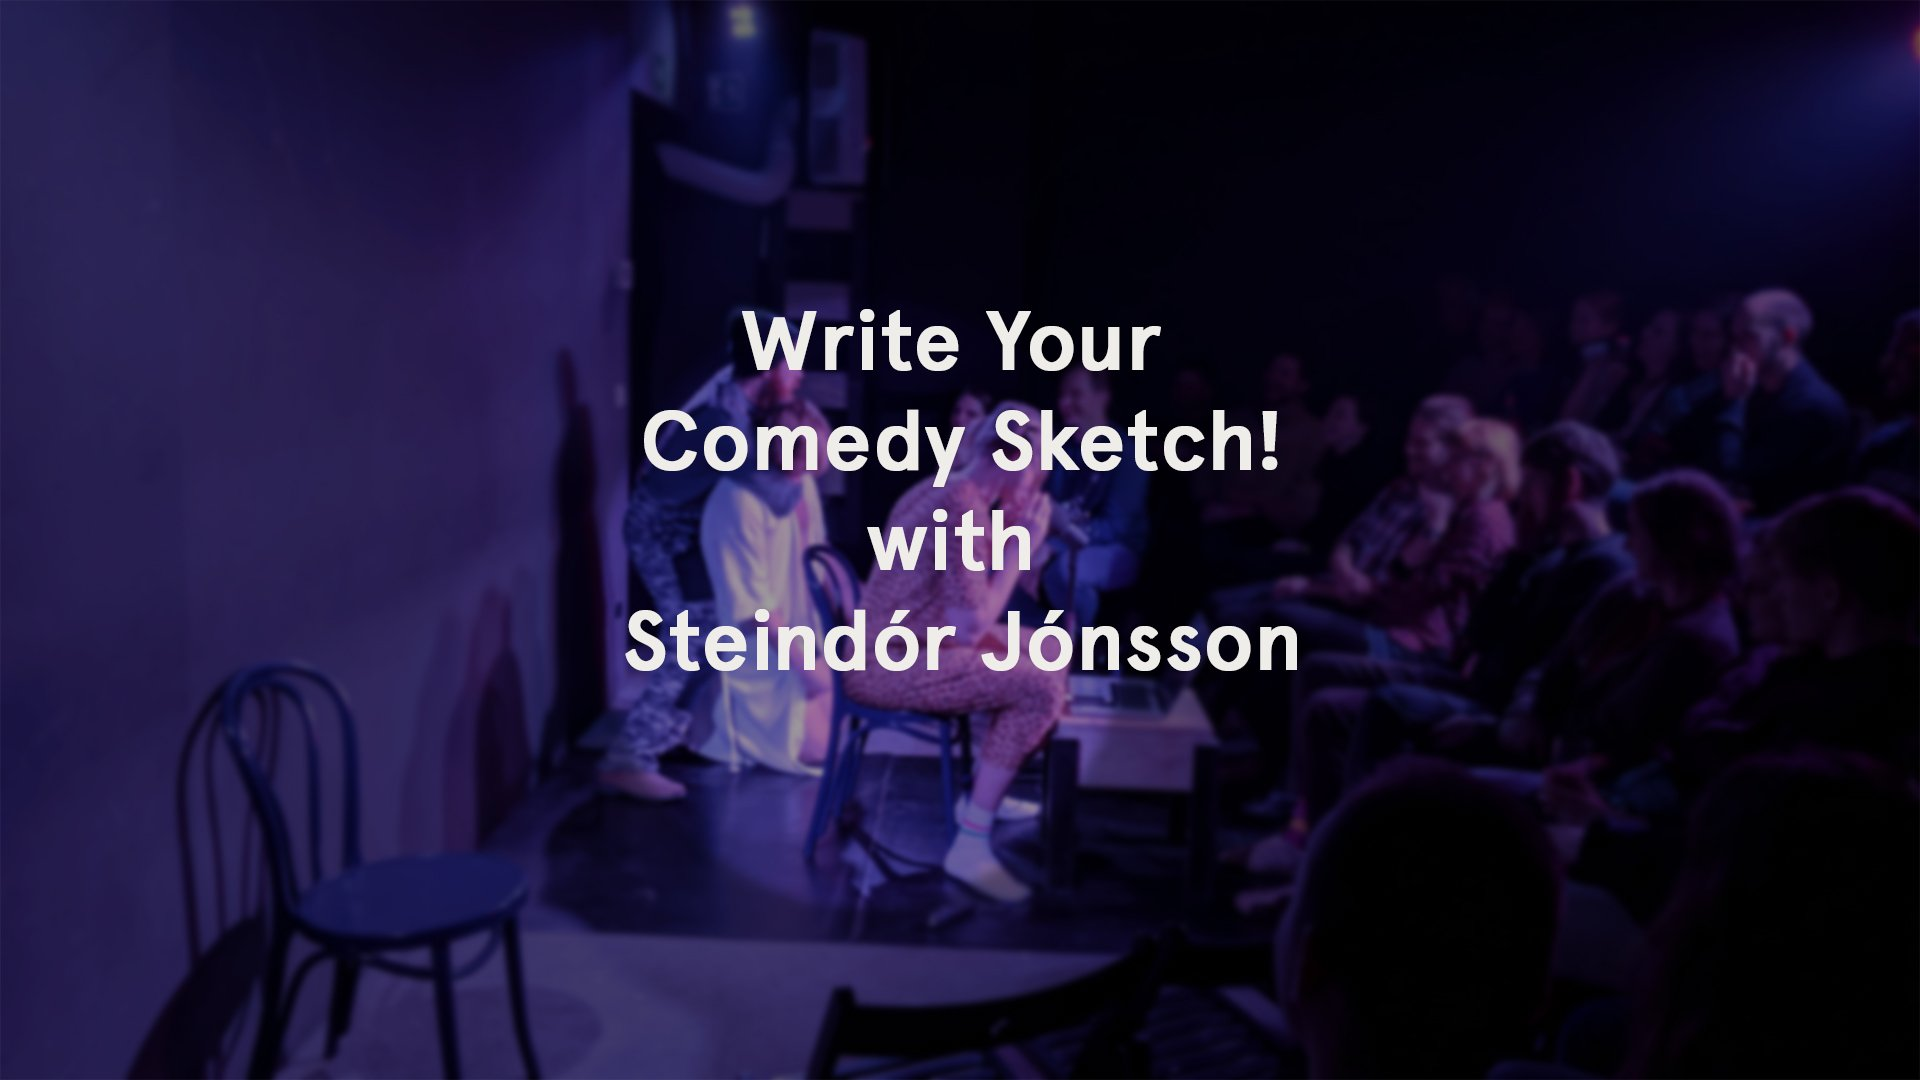 Write Your Comedy Sketch